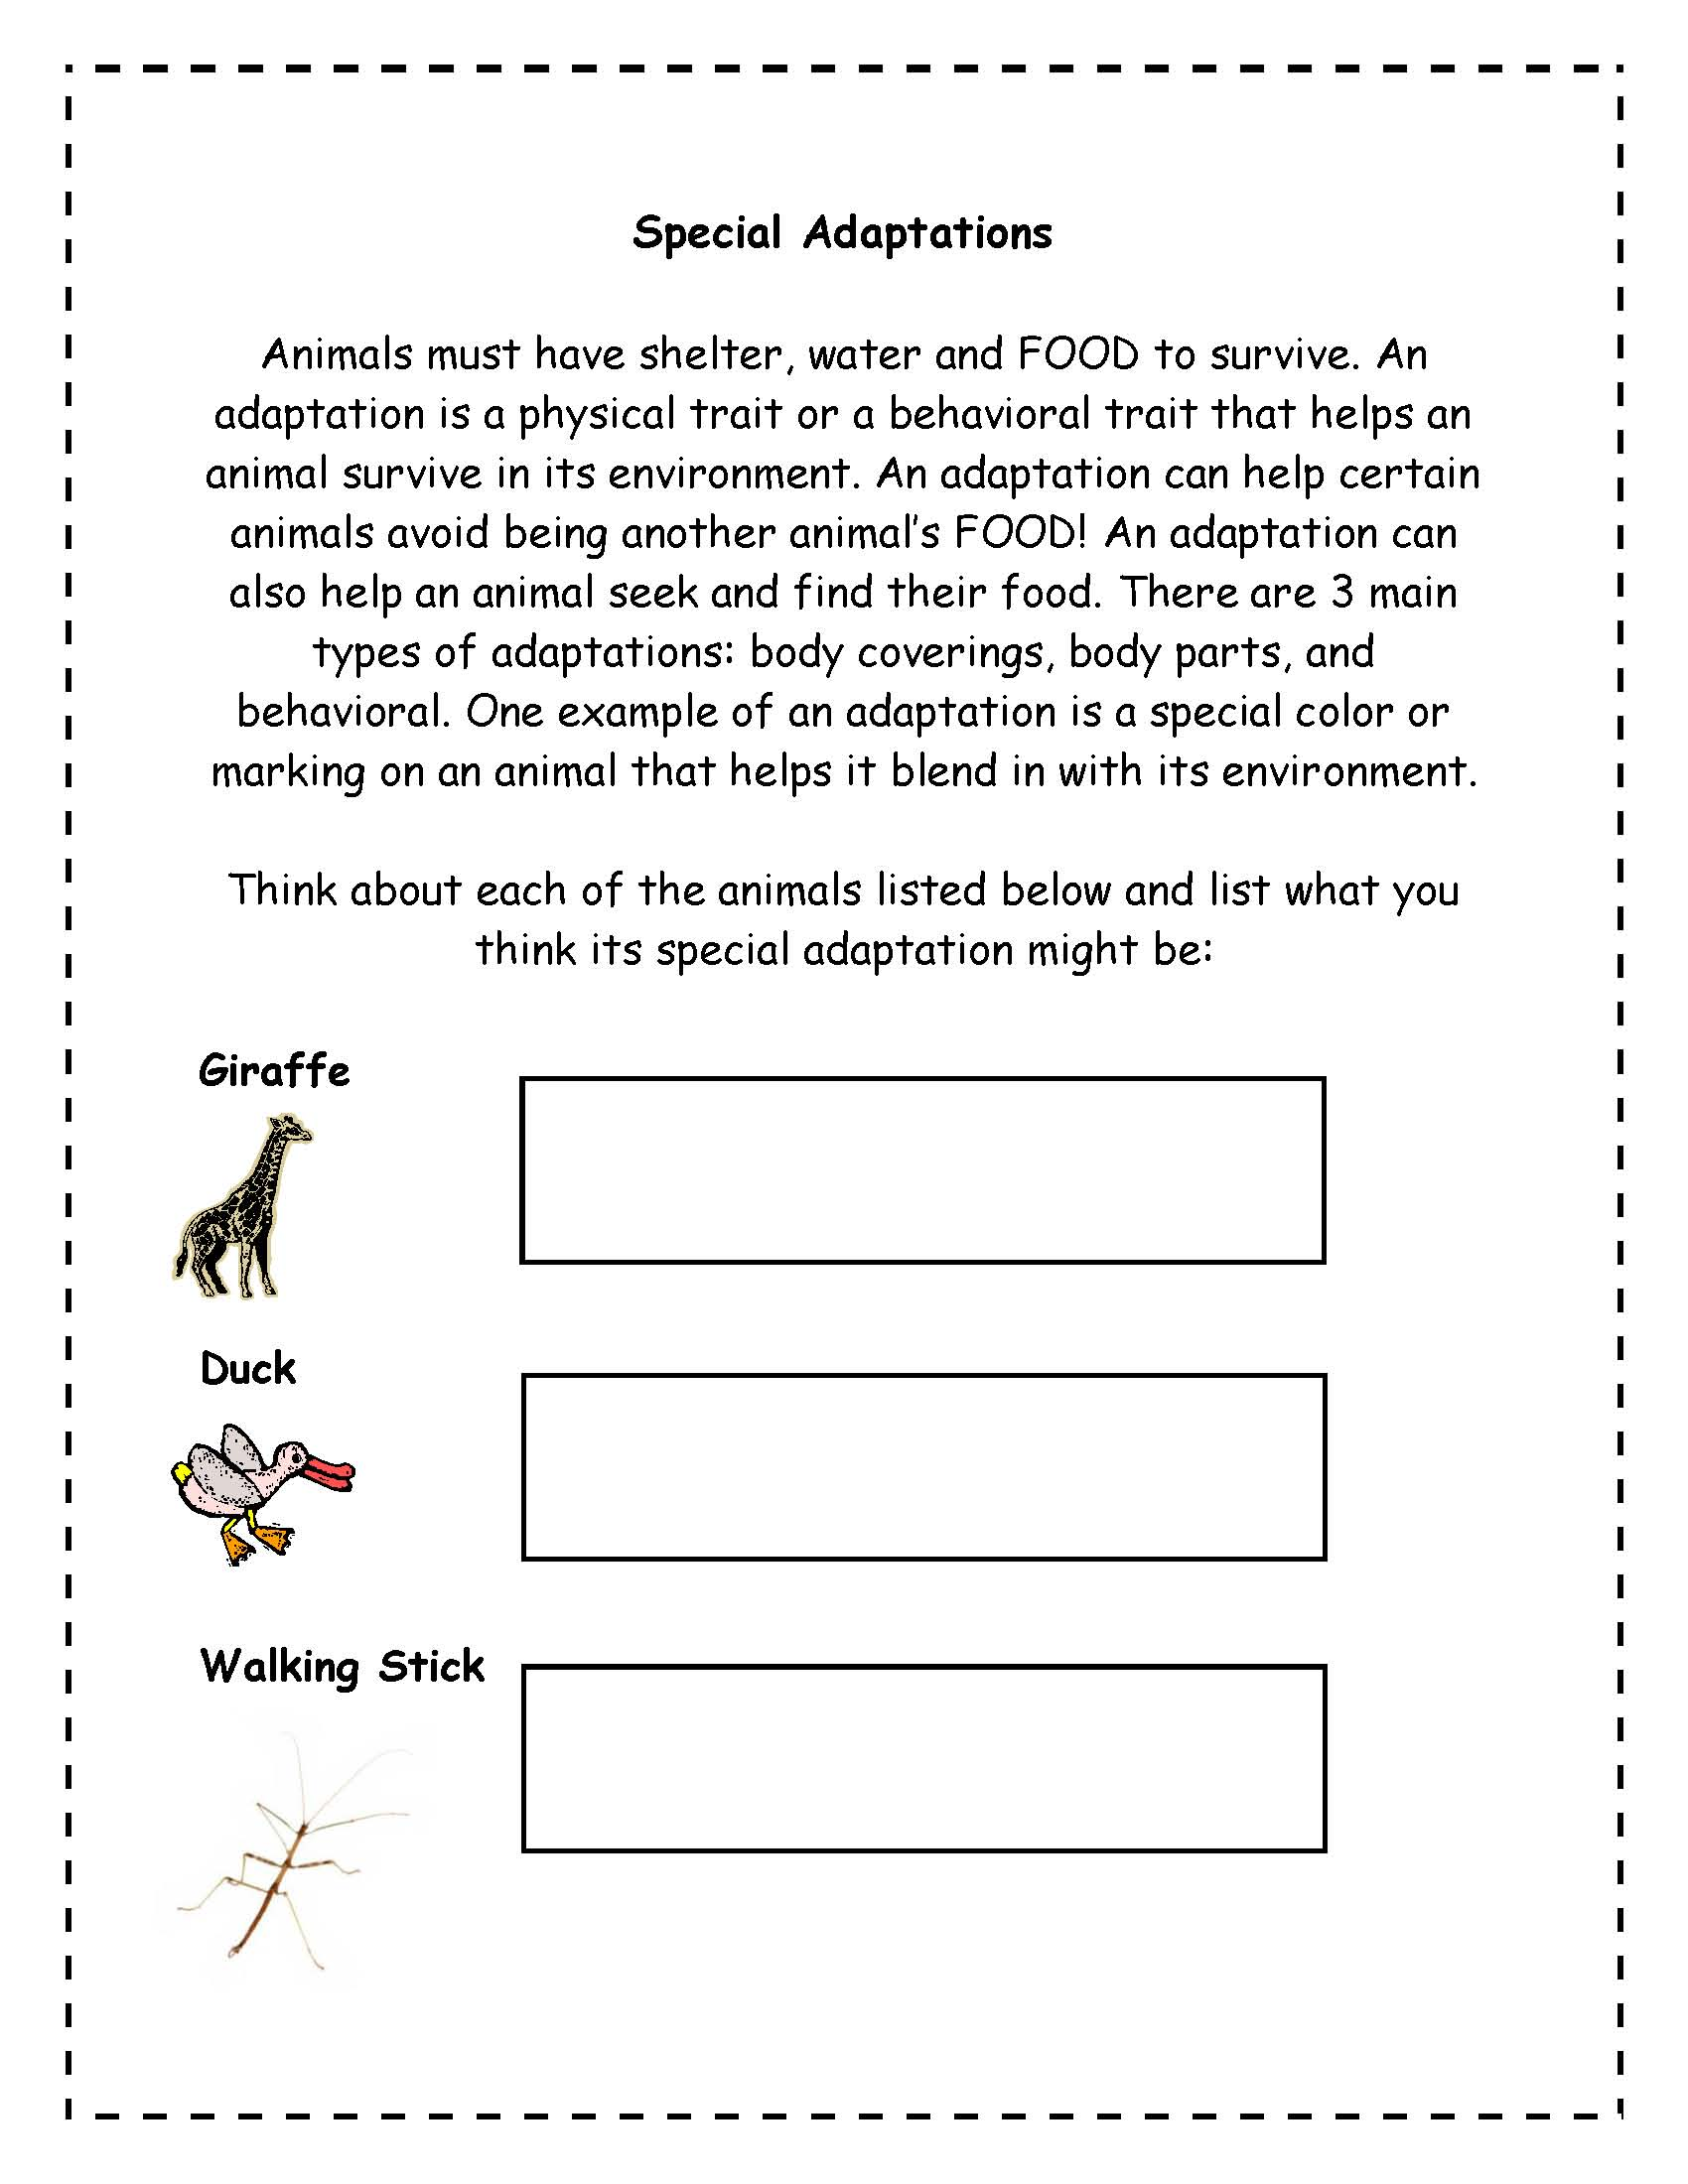 14 Best Images Of Animal Classification Worksheet